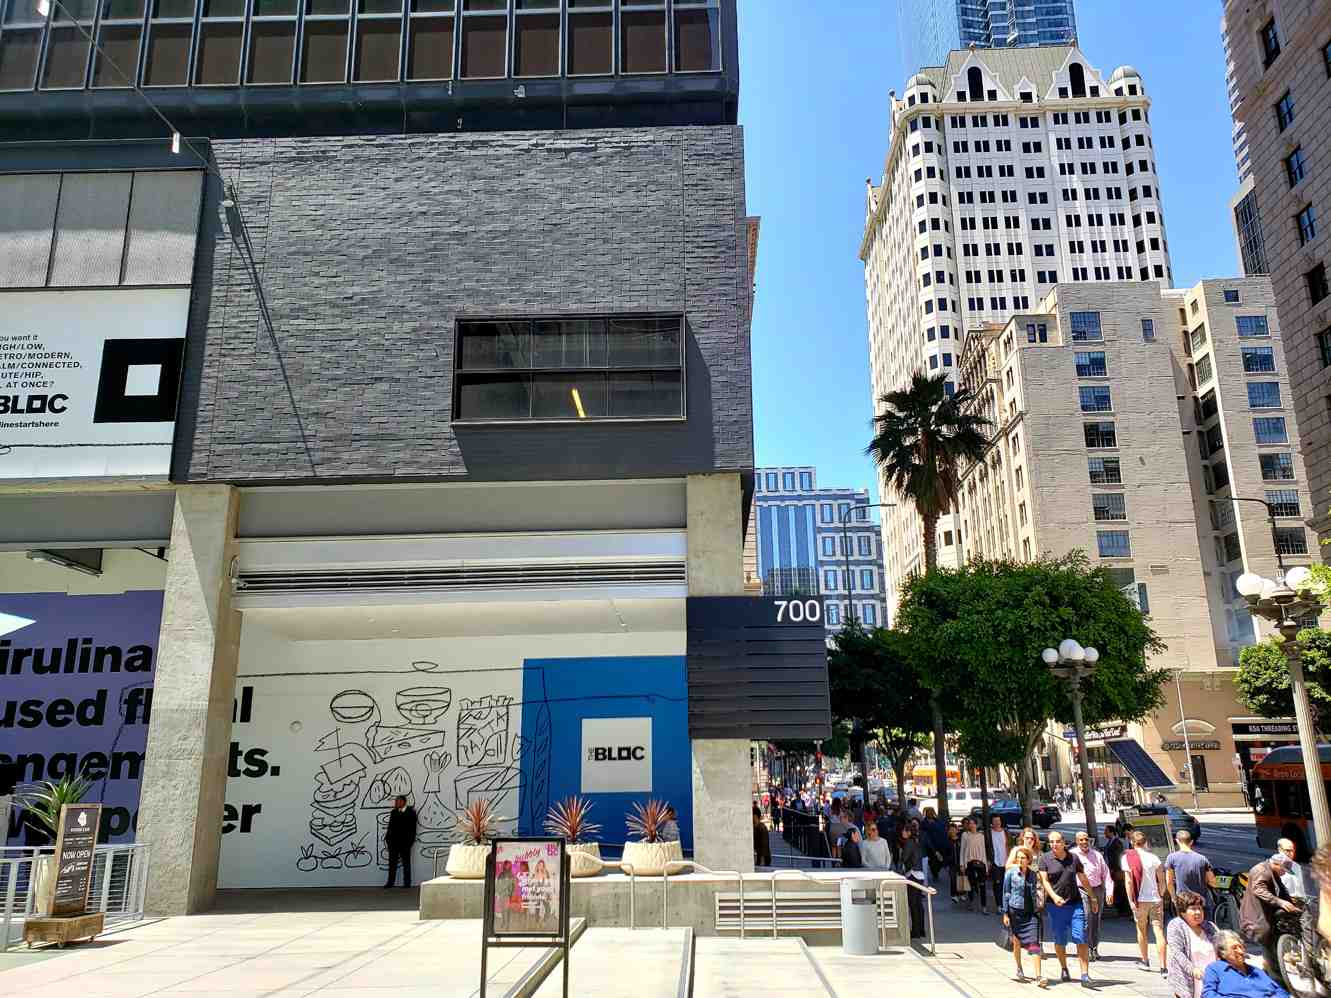 Cute A Uniqlo Plans Flagship At Bloc Downtown La Alamo Drafthouse Los Angeles Yelp Alamo Drafthouse Los Angeles Opening Date curbed Alamo Drafthouse Los Angeles